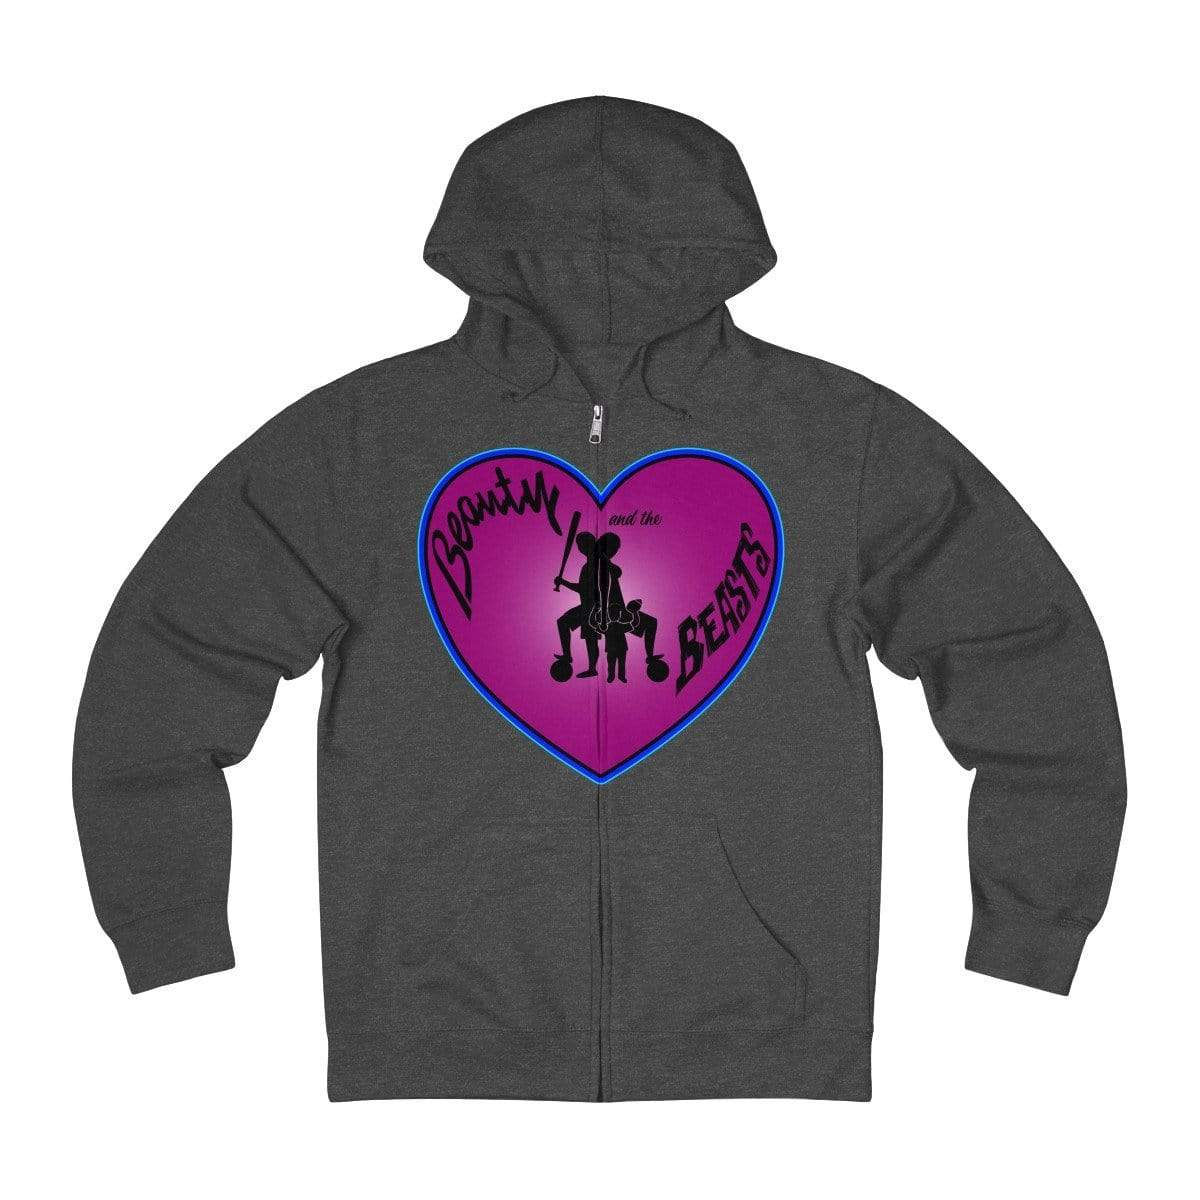 Plumskum Hoodie Charcoal Heather / L Sports Mother of Twins + French Terry Zip Hoodie